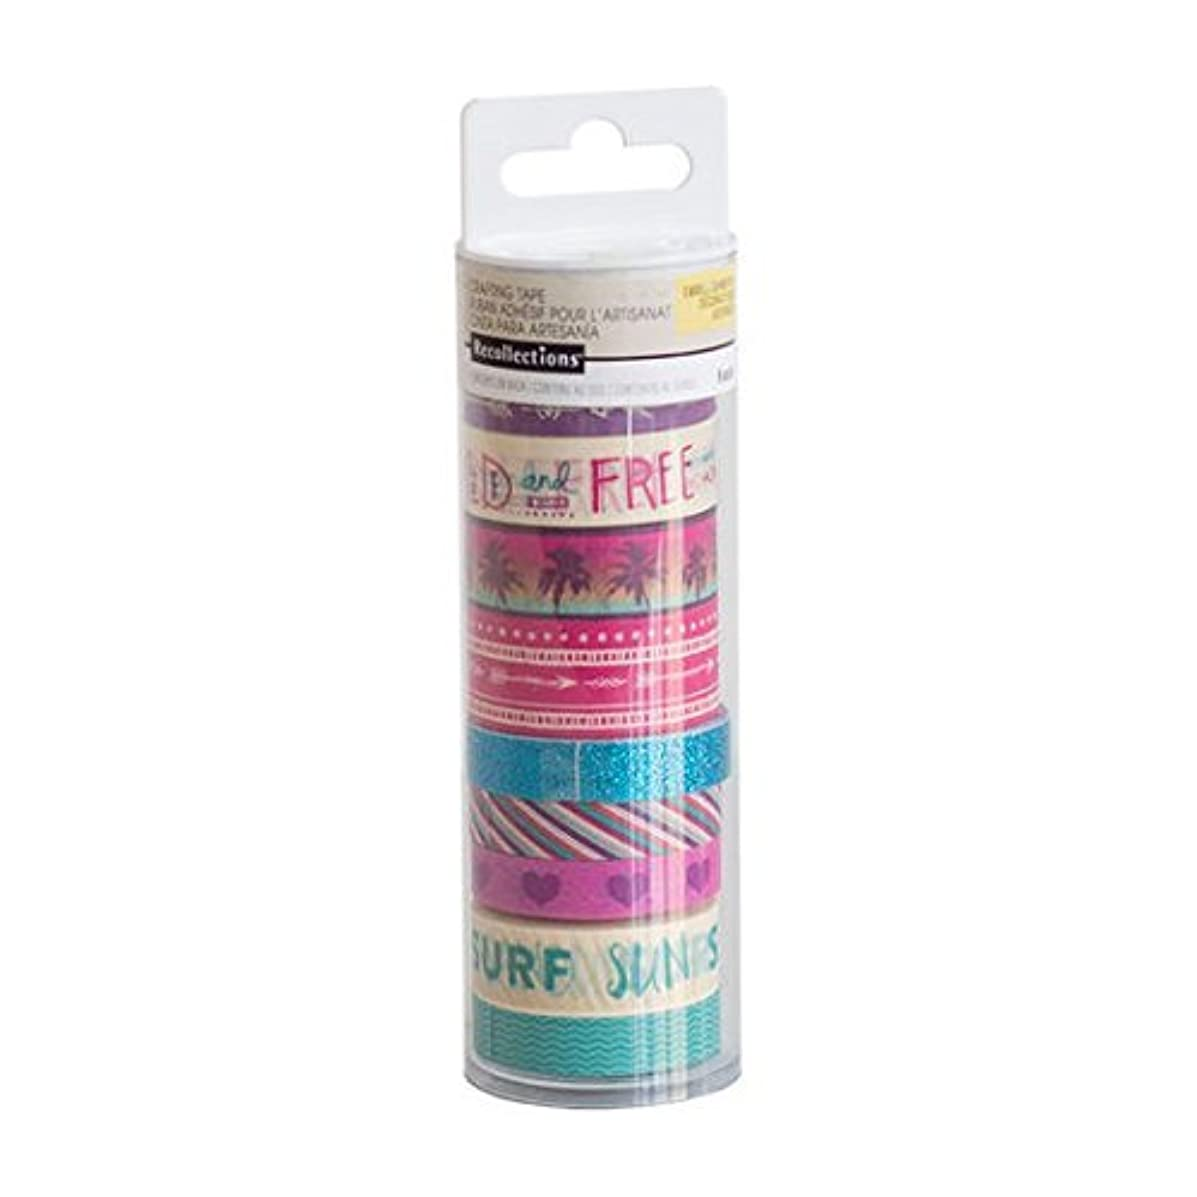 Summer Dream Crafting Washi Tape Tube Recollections 496412